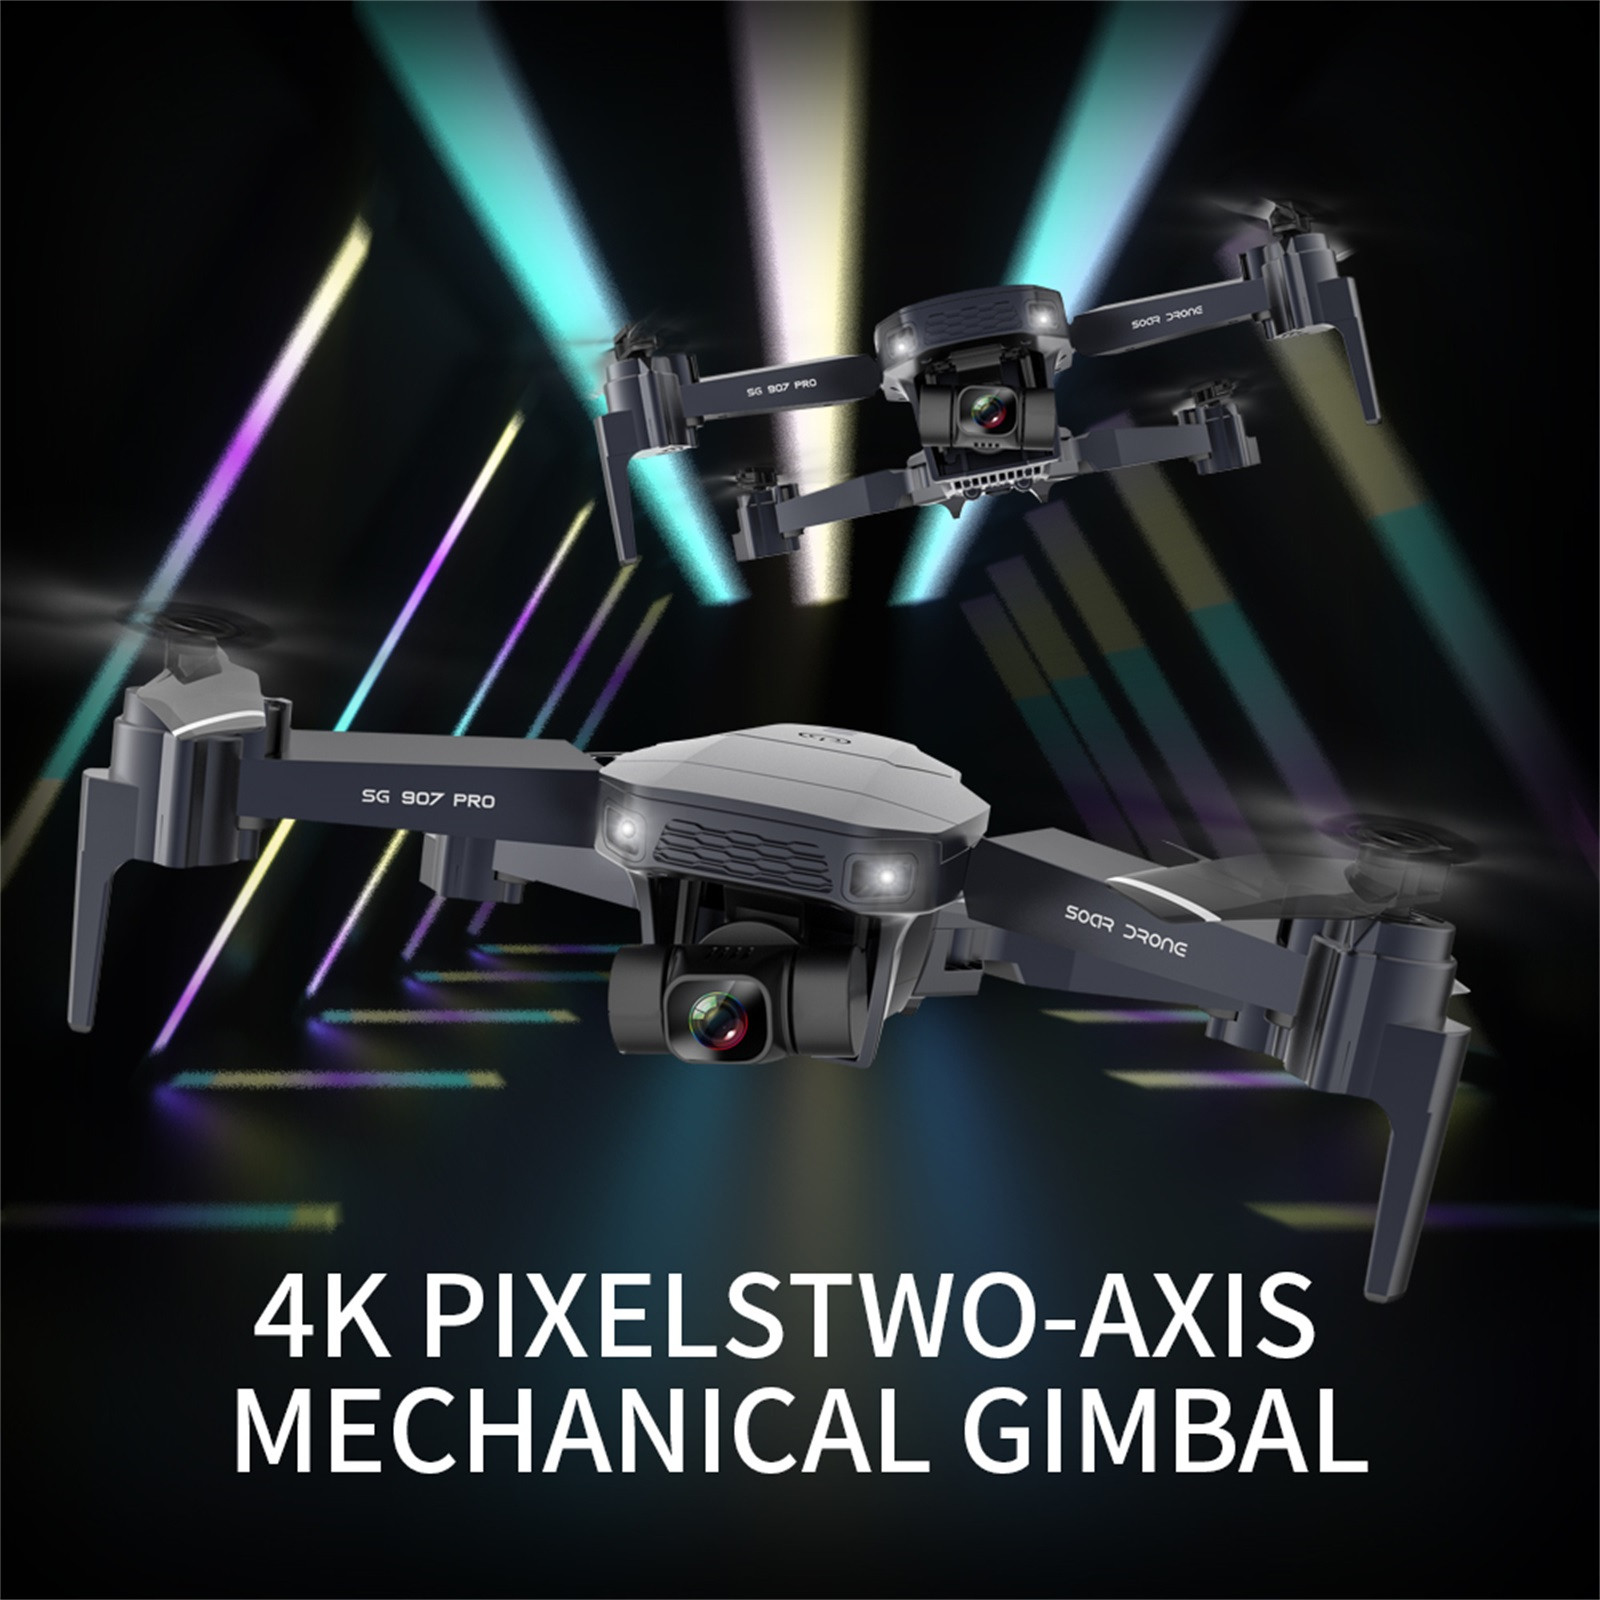 He39bef95646b413ca40dcf40f626fcfcn - 2020 New Sg907 Pro 5g Wifi Drone 2-axis Gimbal 4k Camera Wifi Gps Rc Drone Toy Rc Four-axis Professional Folding Camera Drones